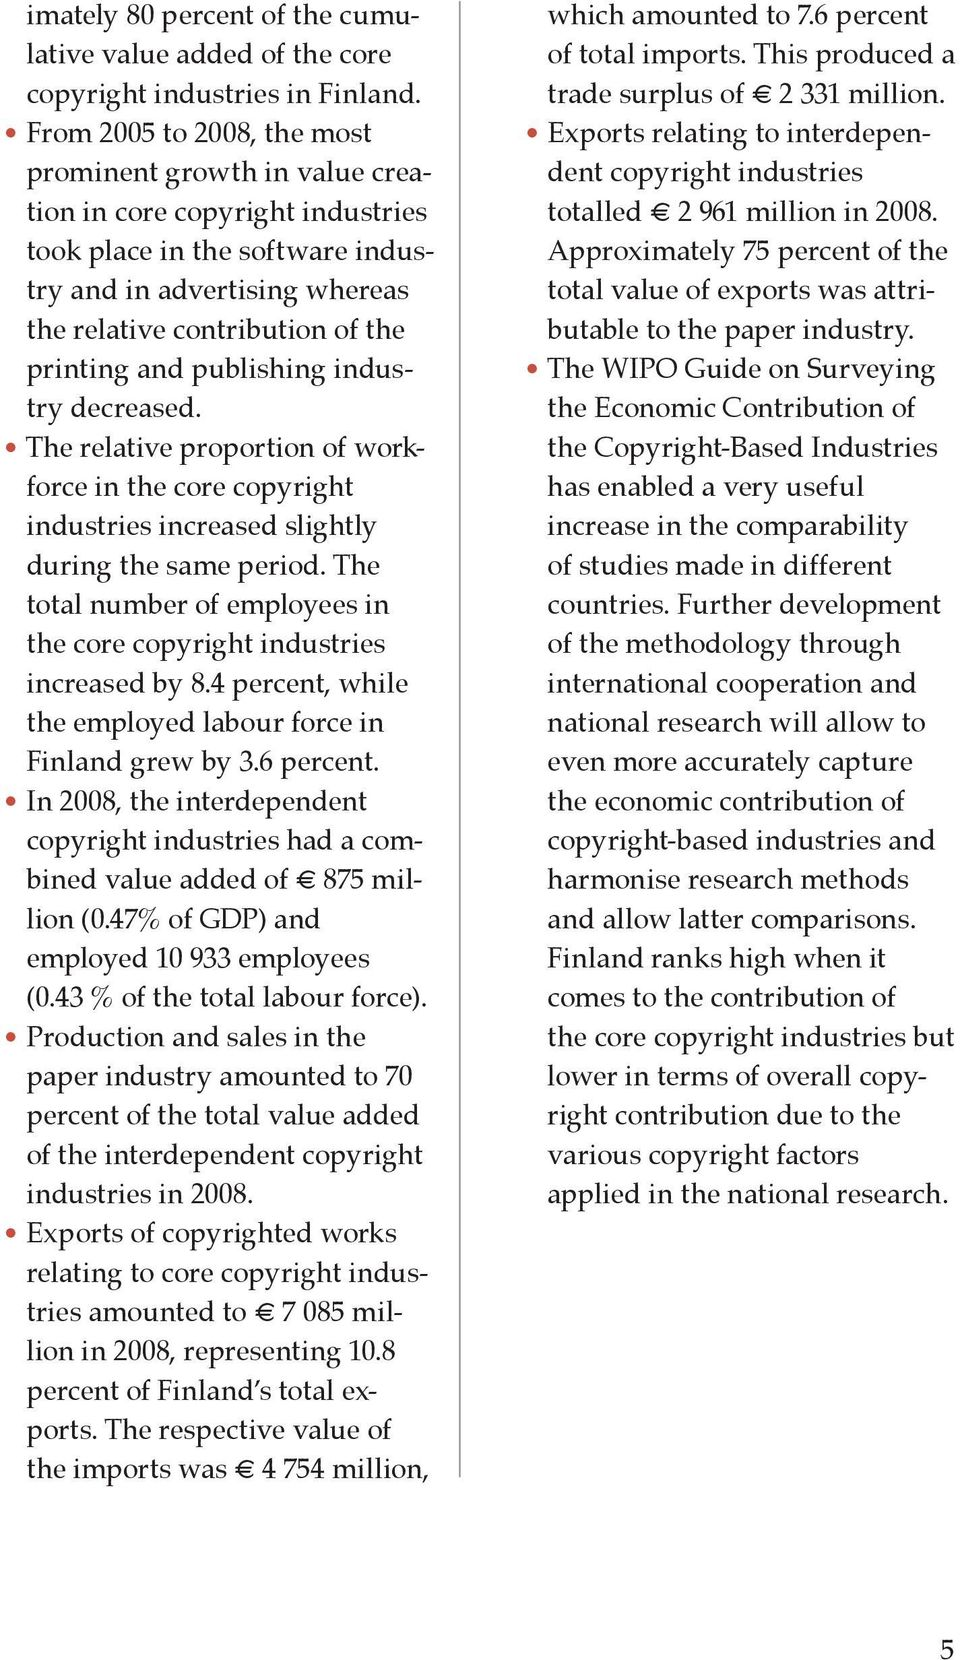 and publishing industry decreased. The relative proportion of workforce in the core copyright industries increased slightly during the same period.